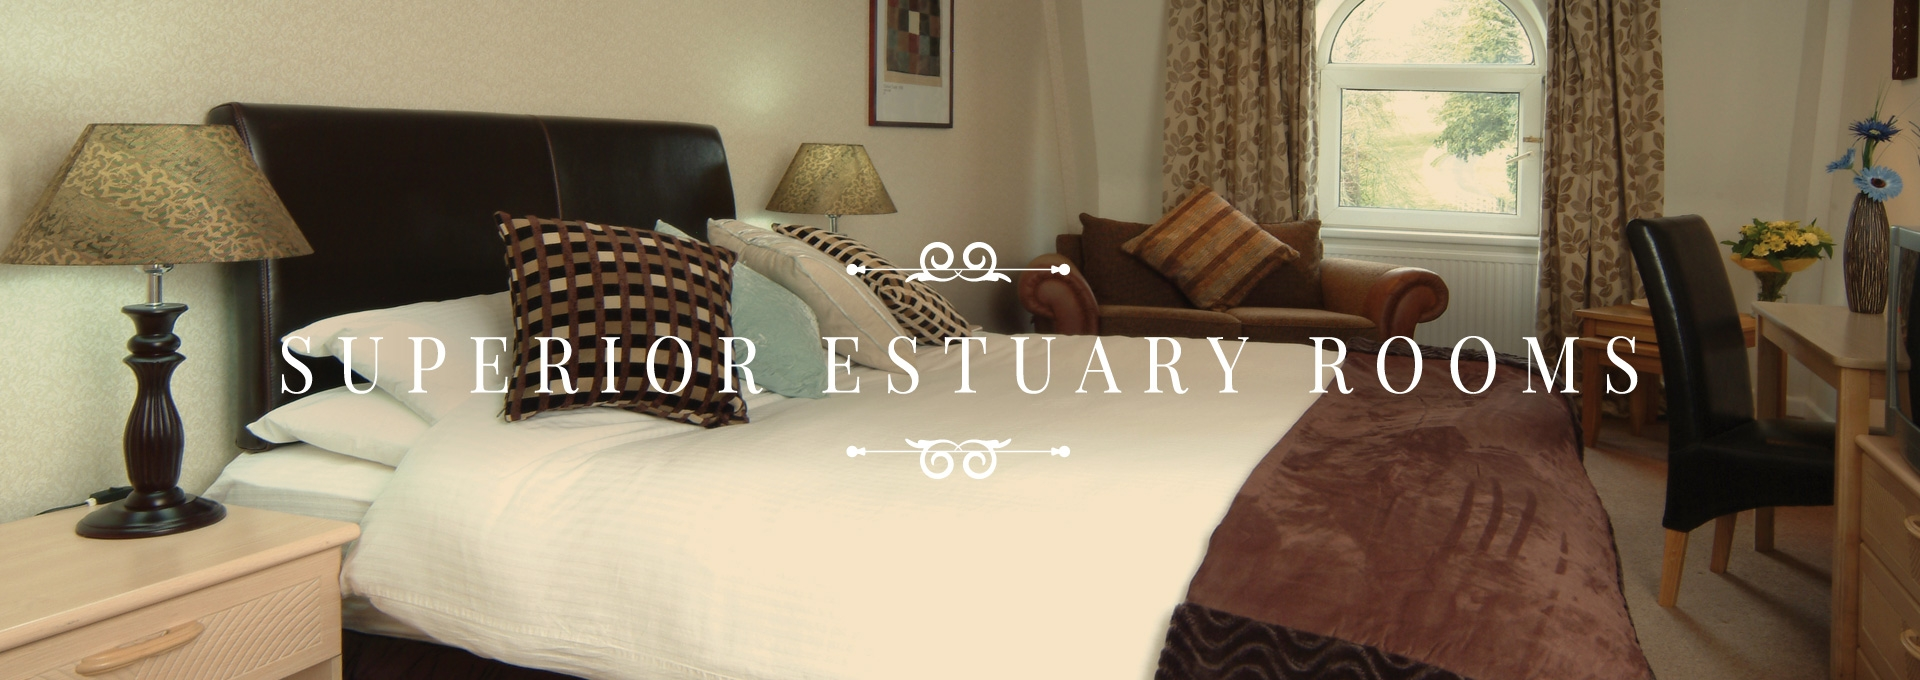 Superior Estuary Rooms overlooking Taw Estaury - Luxury Holidays in Bideford.